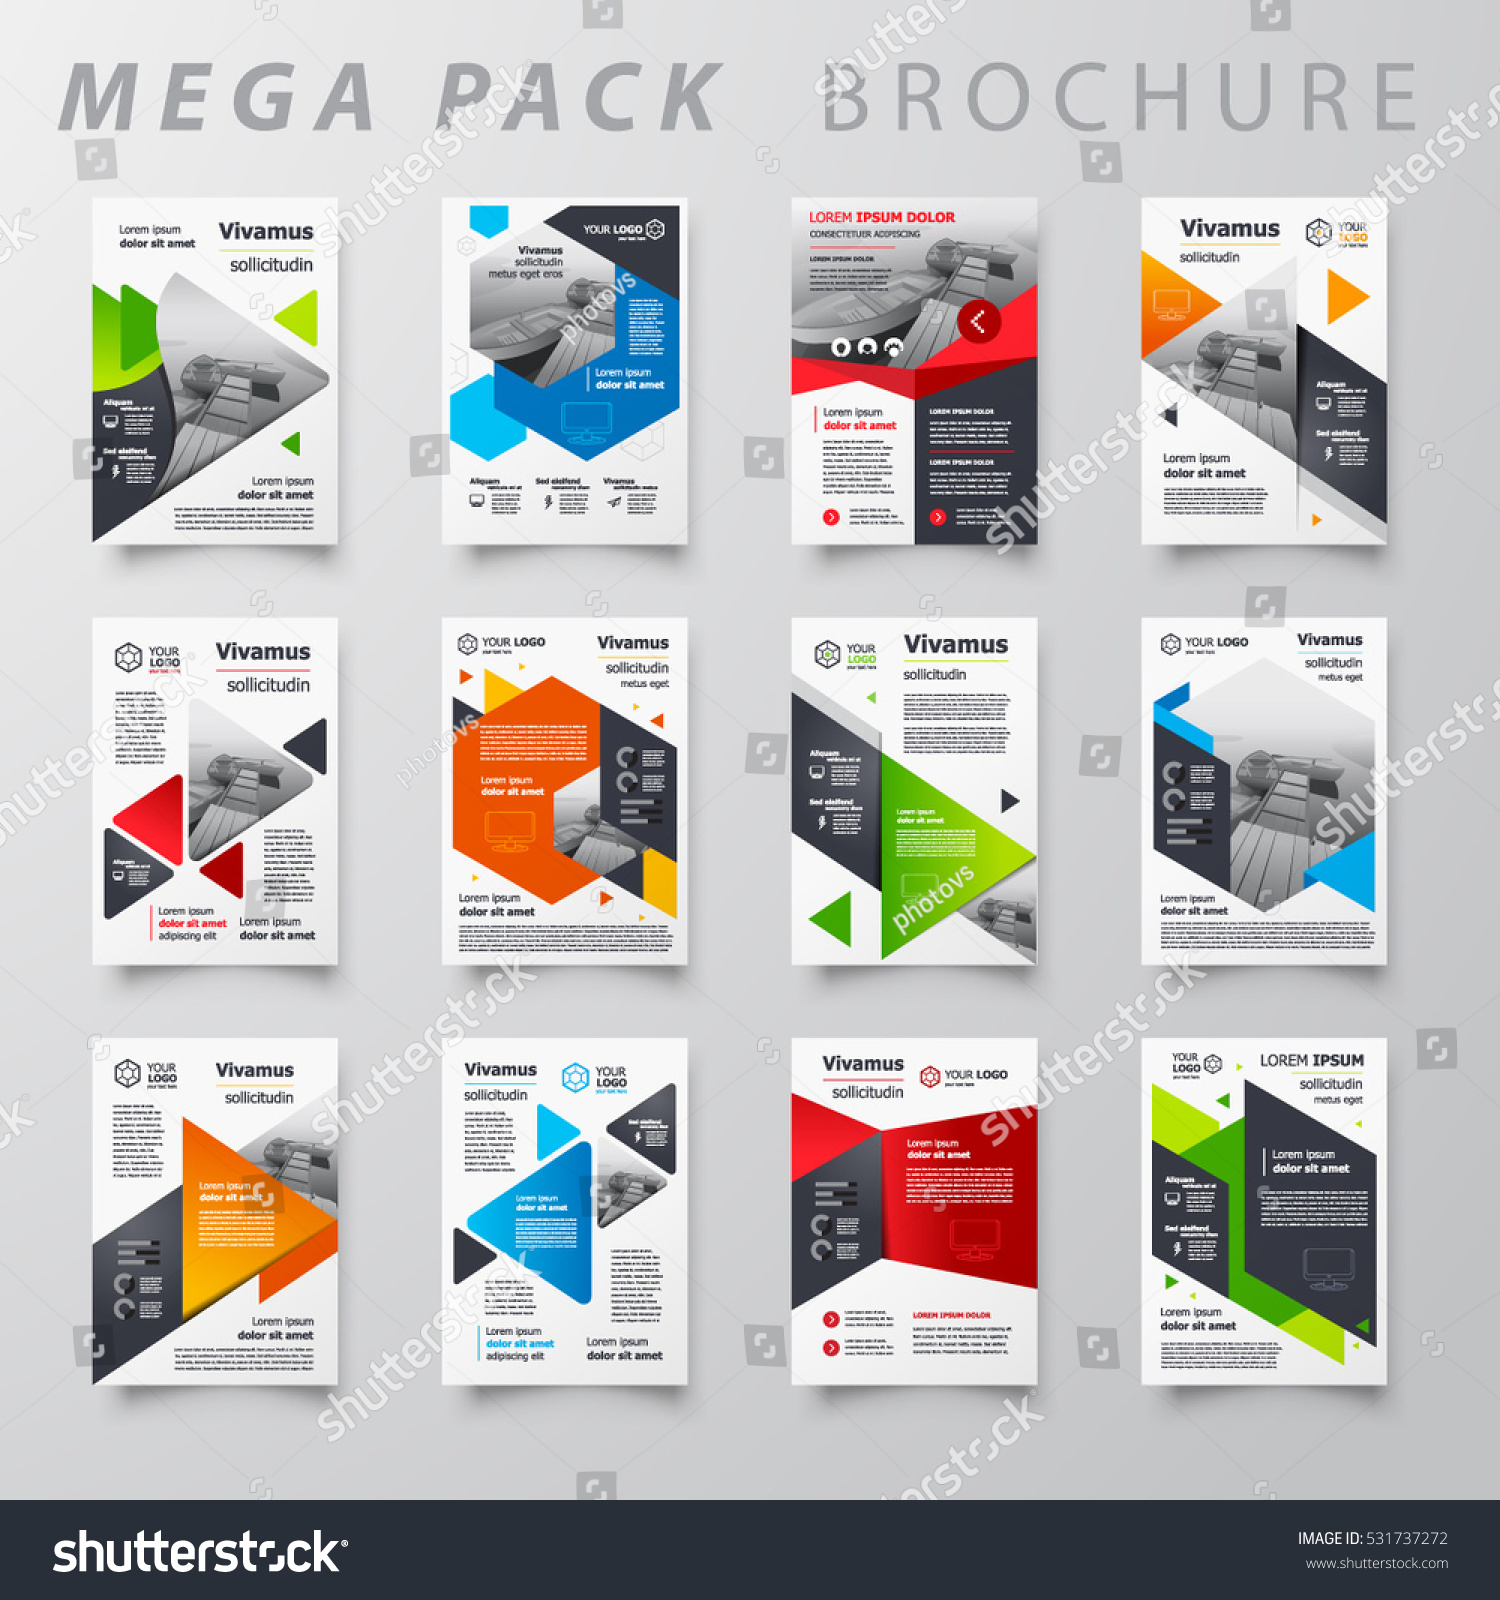 Mega pack brochure design template flyer stock vector for Brochure size template